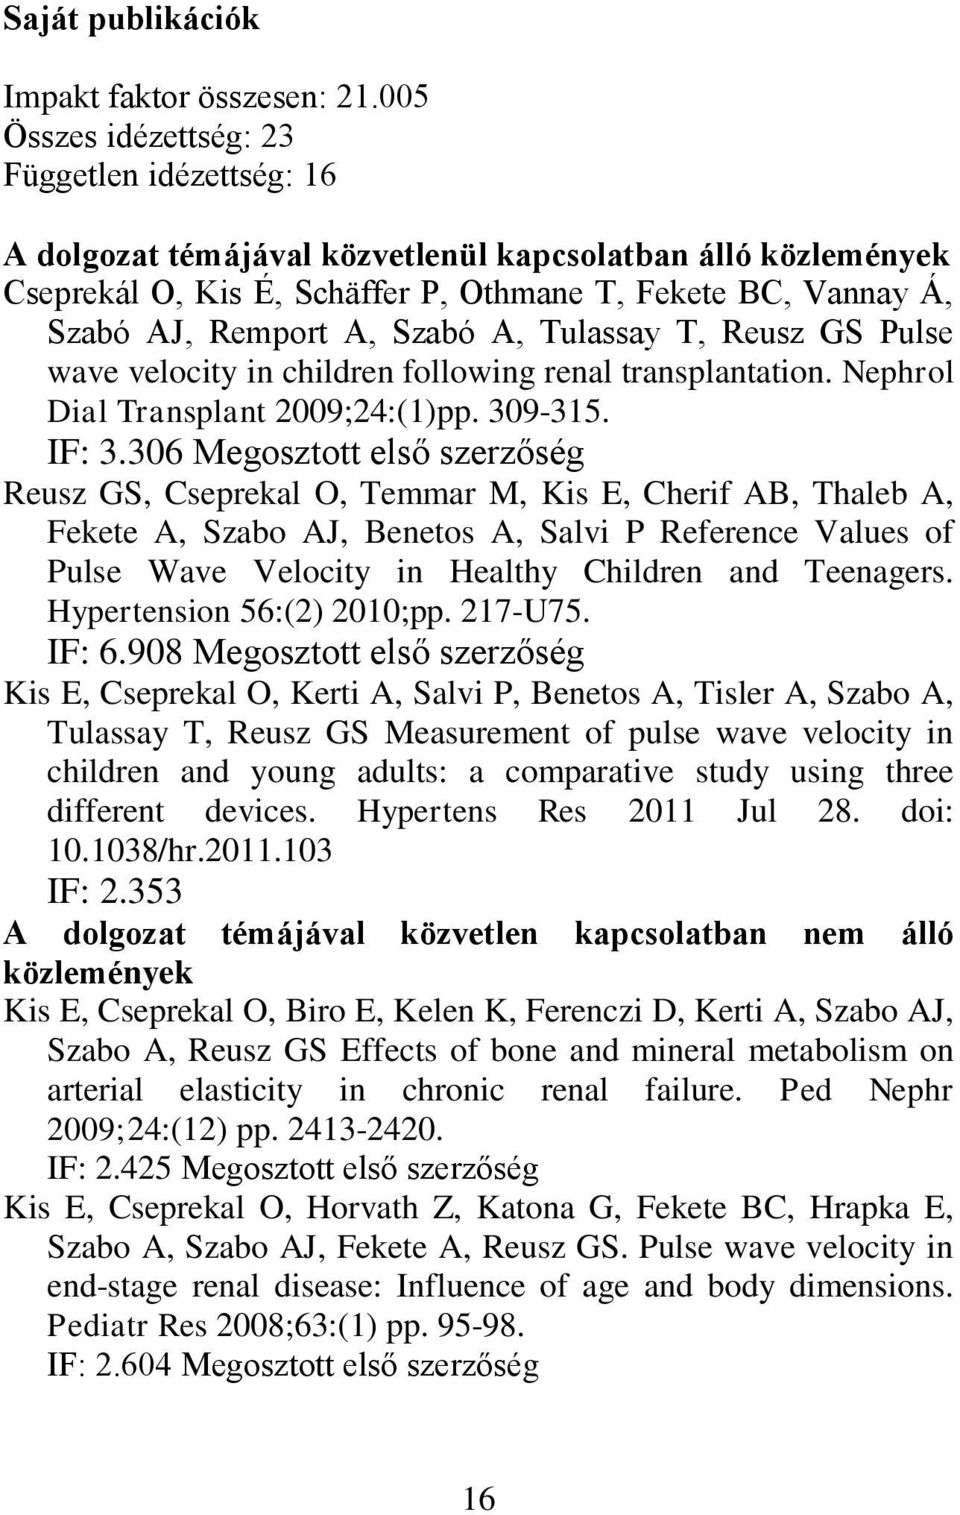 Szabó A, Tulassay T, Reusz GS Pulse wave velocity in children following renal transplantation. Nephrol Dial Transplant 2009;24:(1)pp. 309-315. IF: 3.